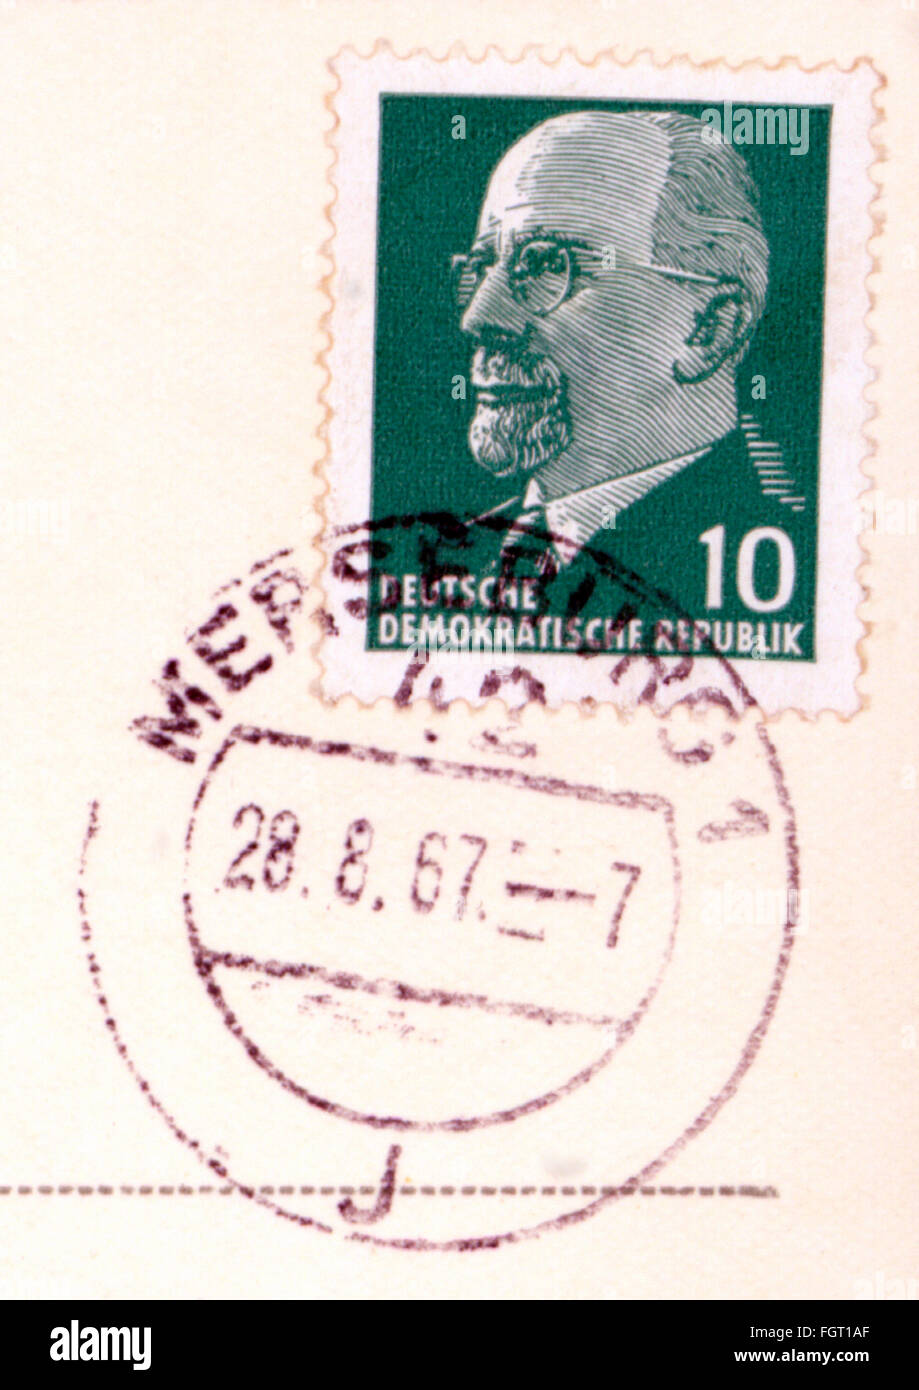 mail, postage stamps, Germany, Deutsche Post, 10 pfennig postage stamp, issue: 29.8.1960, portrait of Walter Ulbricht, - Stock Image